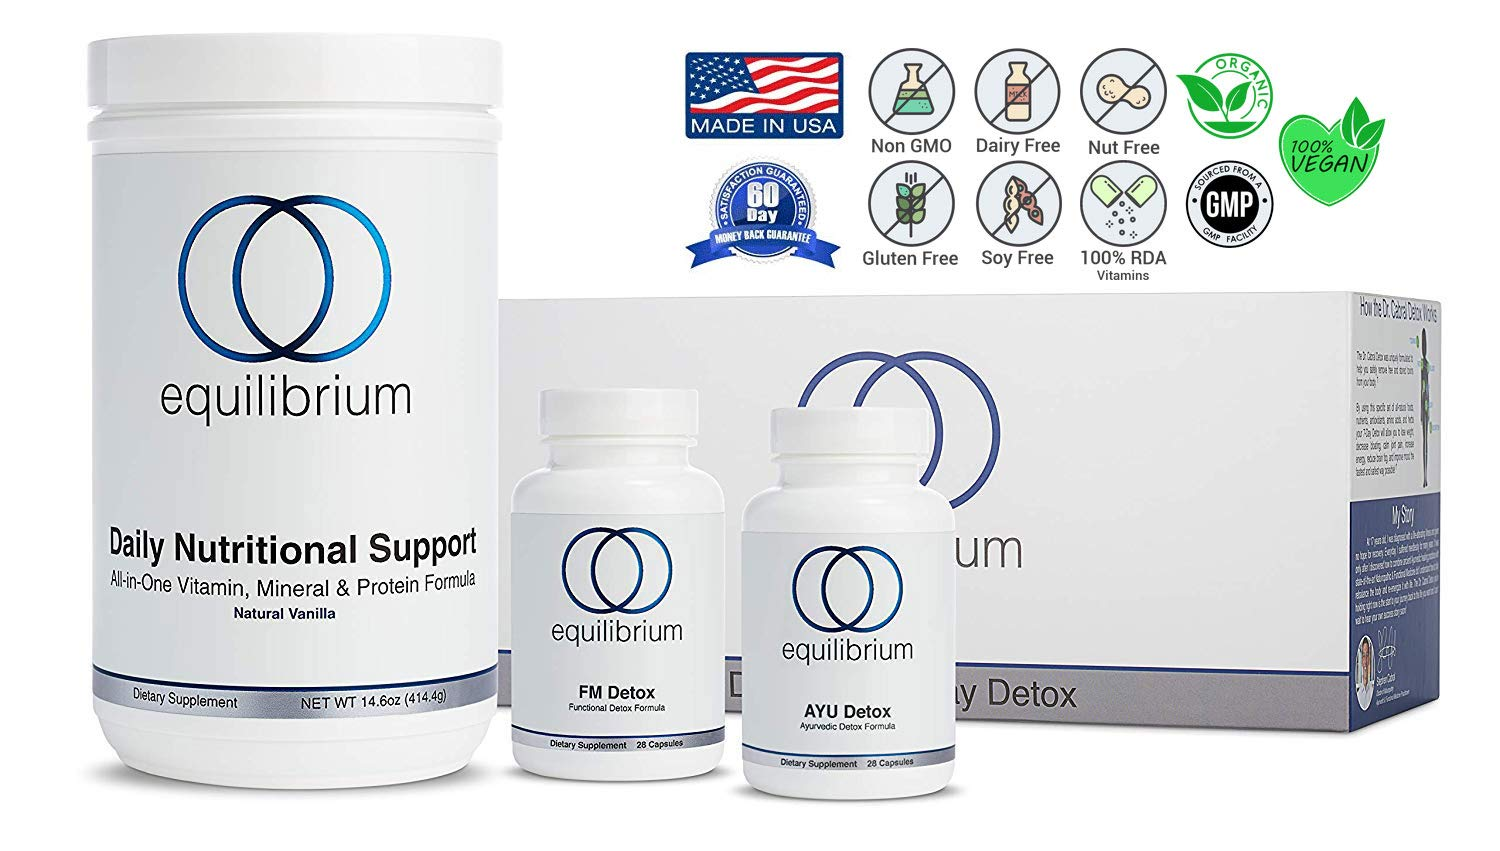 Equilibrium Nutrition 7 Day Revolutionary Full-Body Vanilla Detox. All Natural Cleanse, Organic Superfood Nutrients for Fat Burning, More Energy, Removal of Toxins, Decreased Bloating by Equilibrium Nutrition